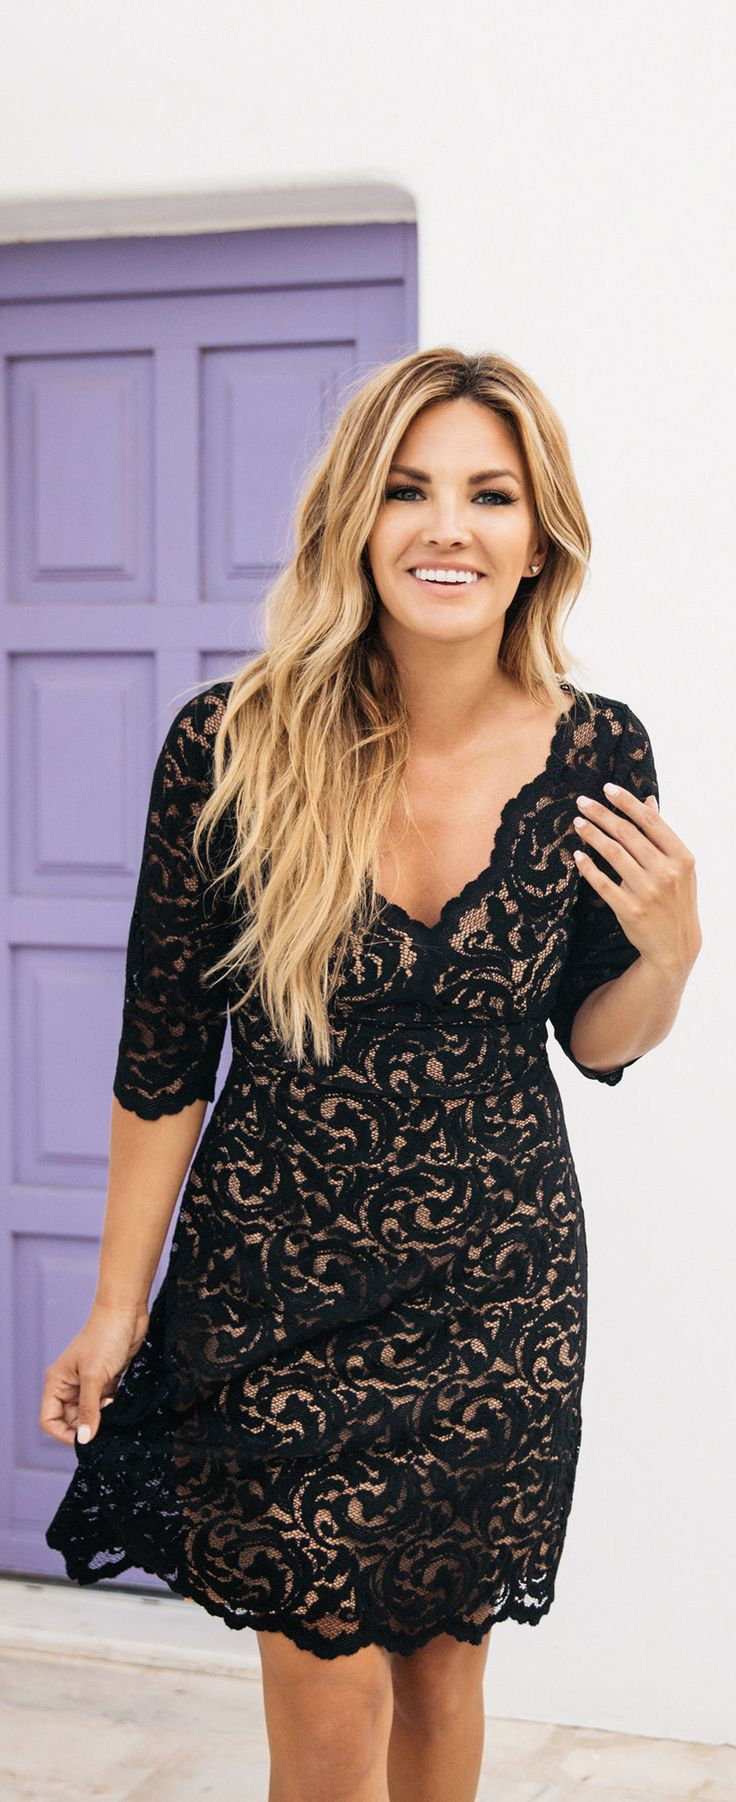 The perfect dress for any occasion. [pictured on Becca Tilley]